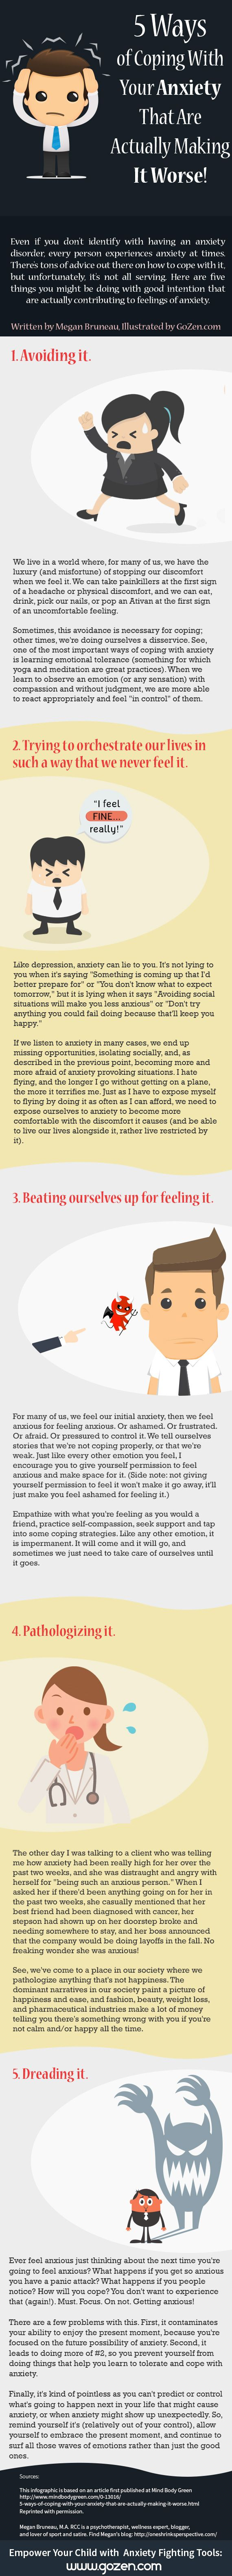 Do you ever get angry at yourself for feeling anxious?Beating yourselfup for feeling anxious only multiplies the misery. This is #3 on thelist of 5ways of coping with anxiety that can actually make it worse.Check out the full list below along...